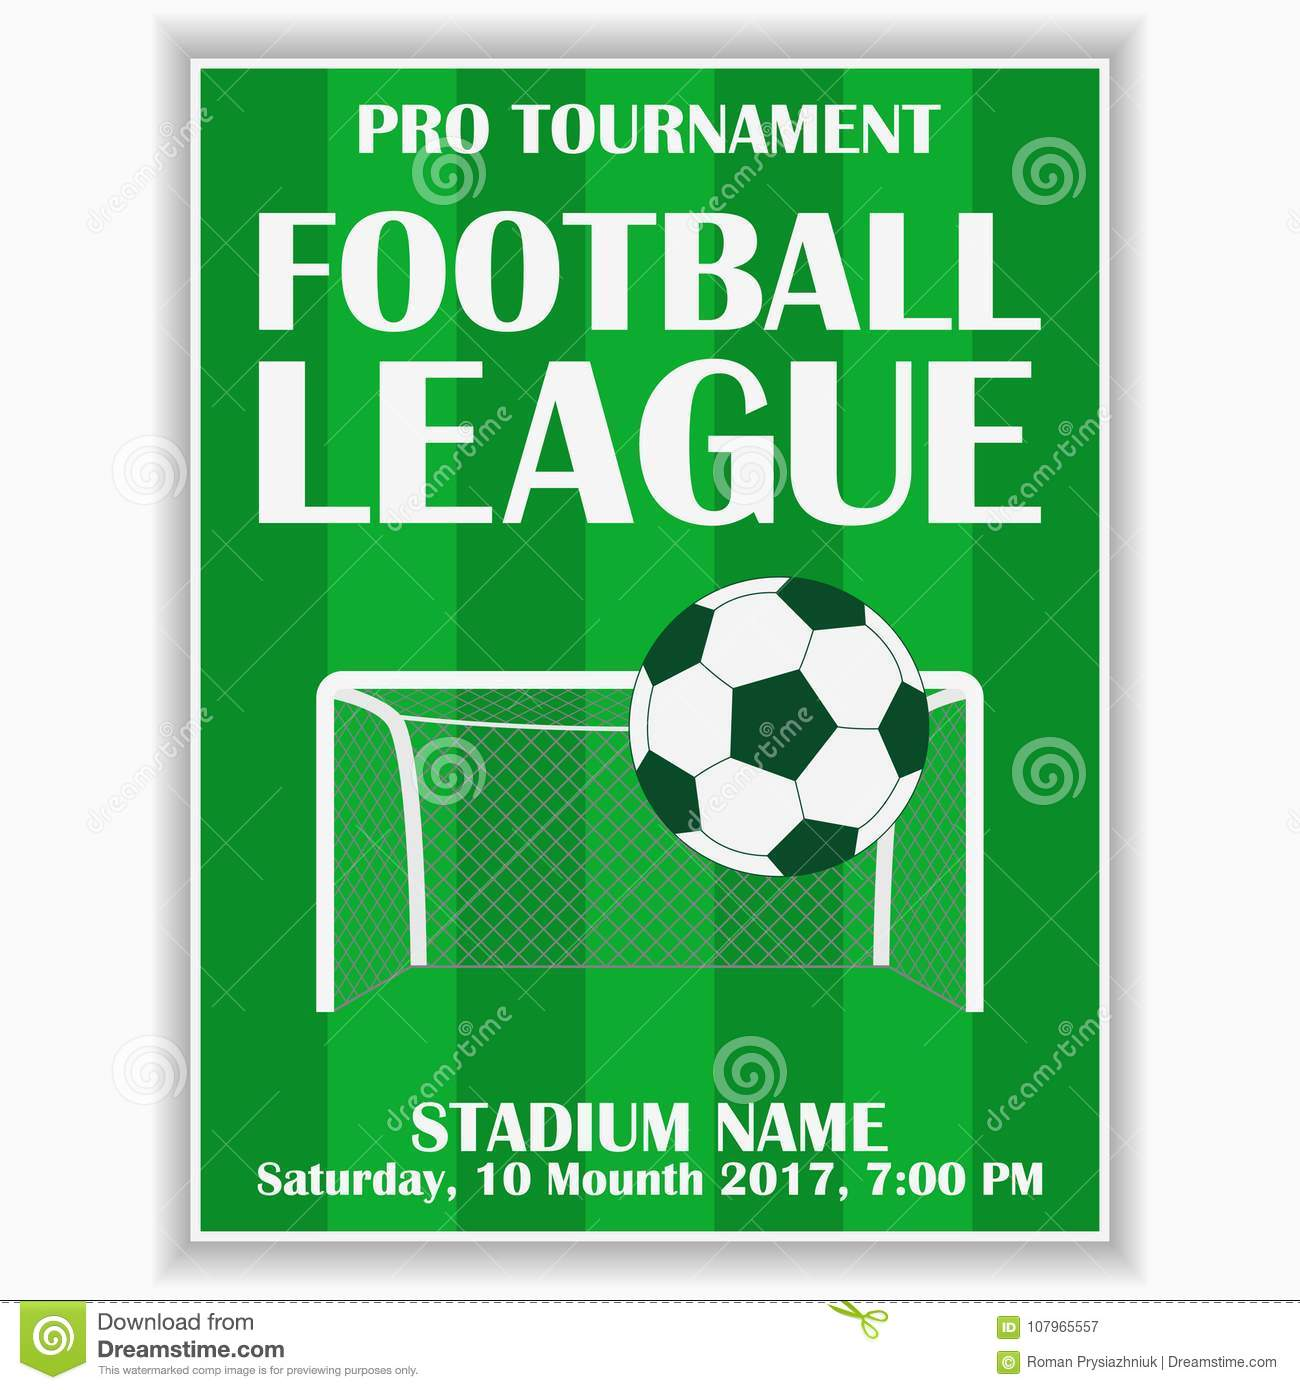 Soccer League Poster Design Template For Football Sport Invitation